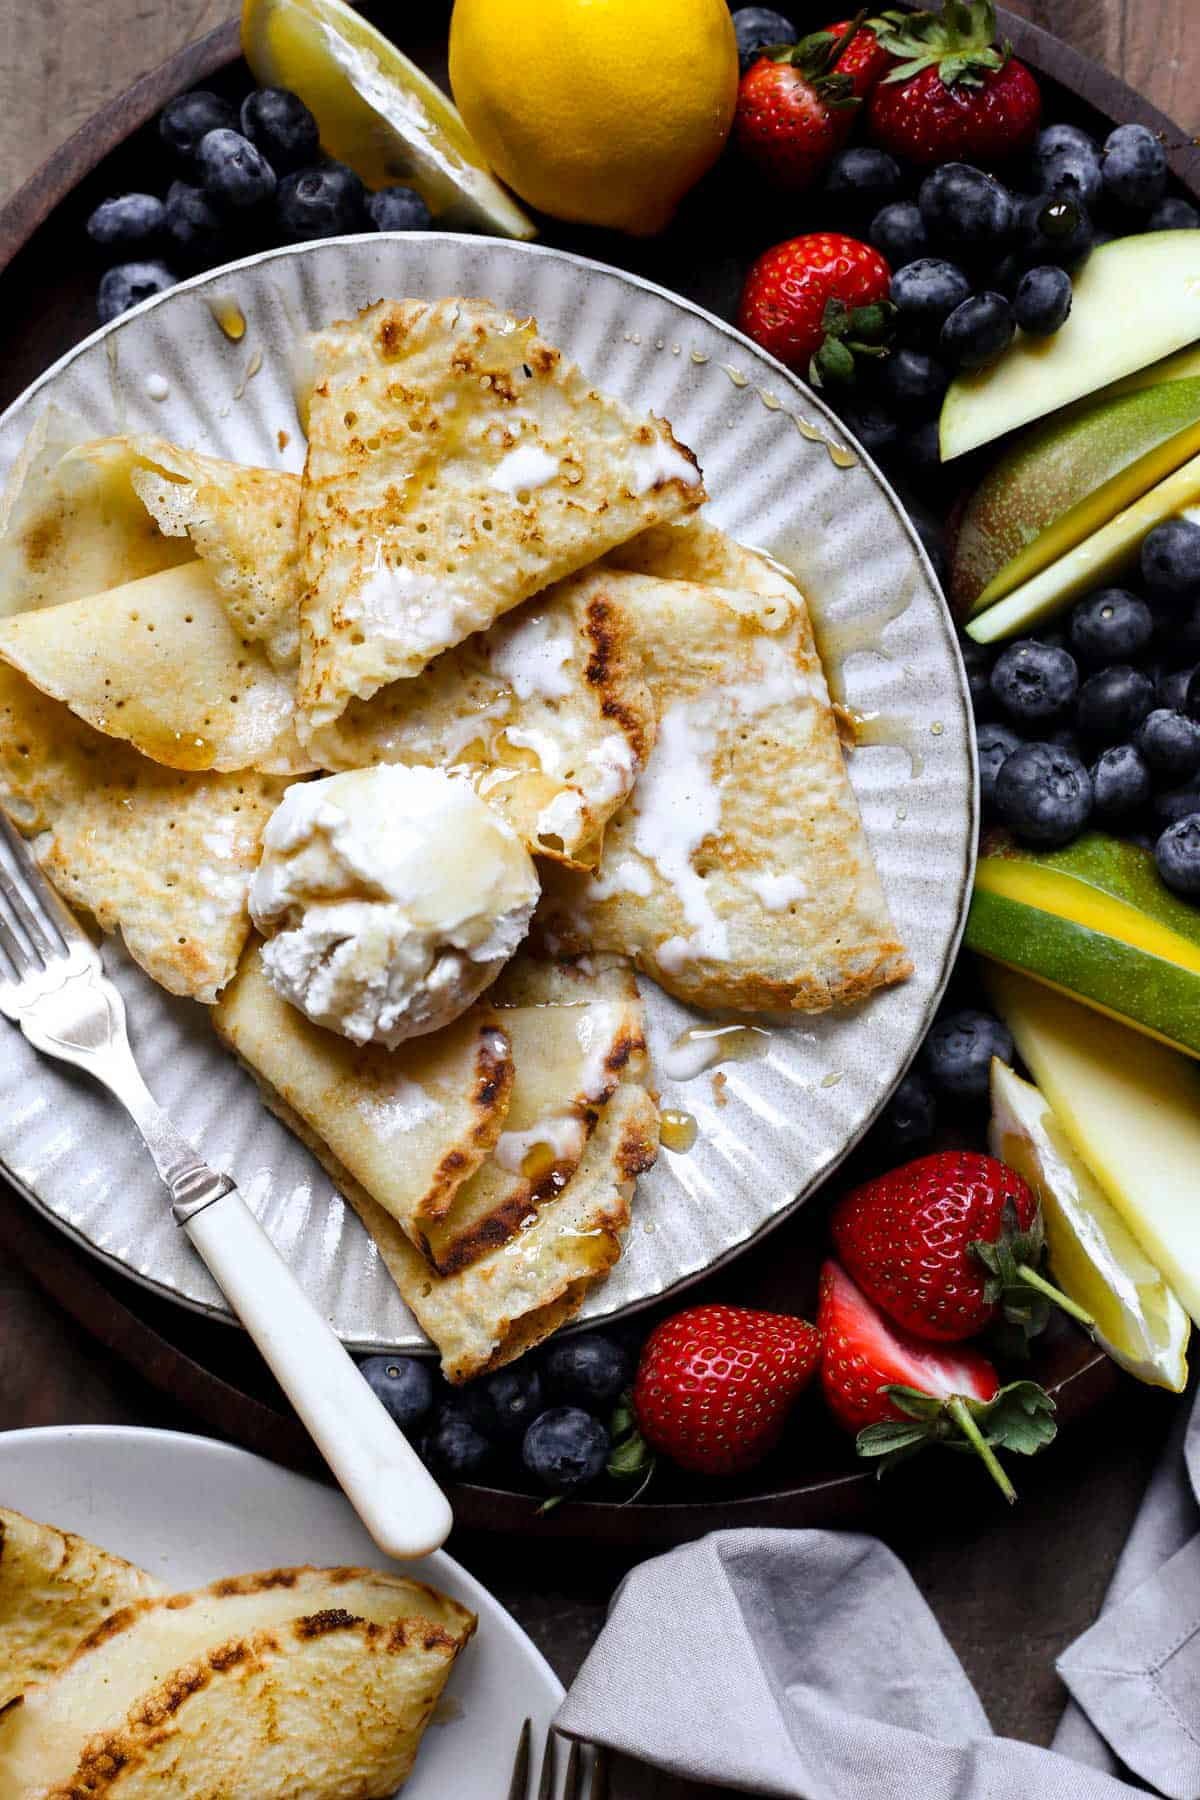 A plate of pancakes with ice cream, maple syrup and a fruit platter